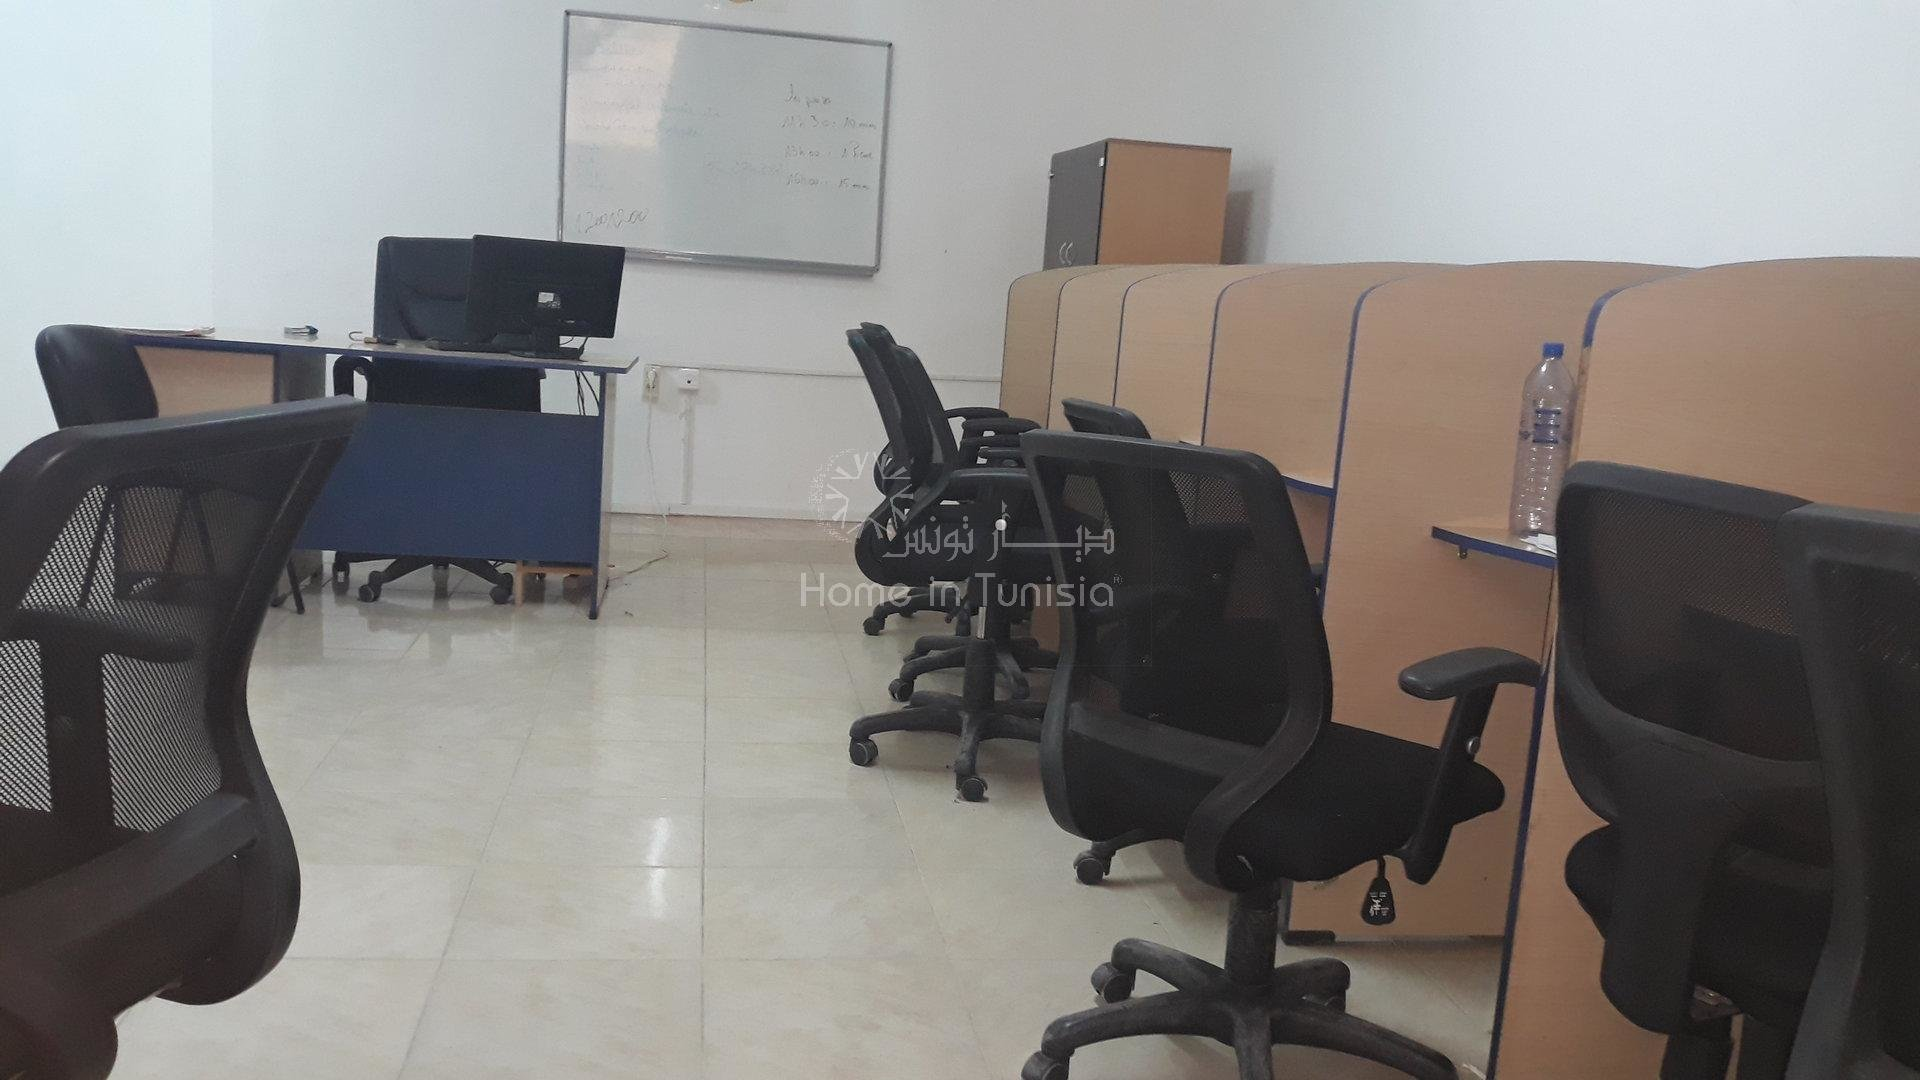 Rental Business - Khezama Ouest - Tunisia